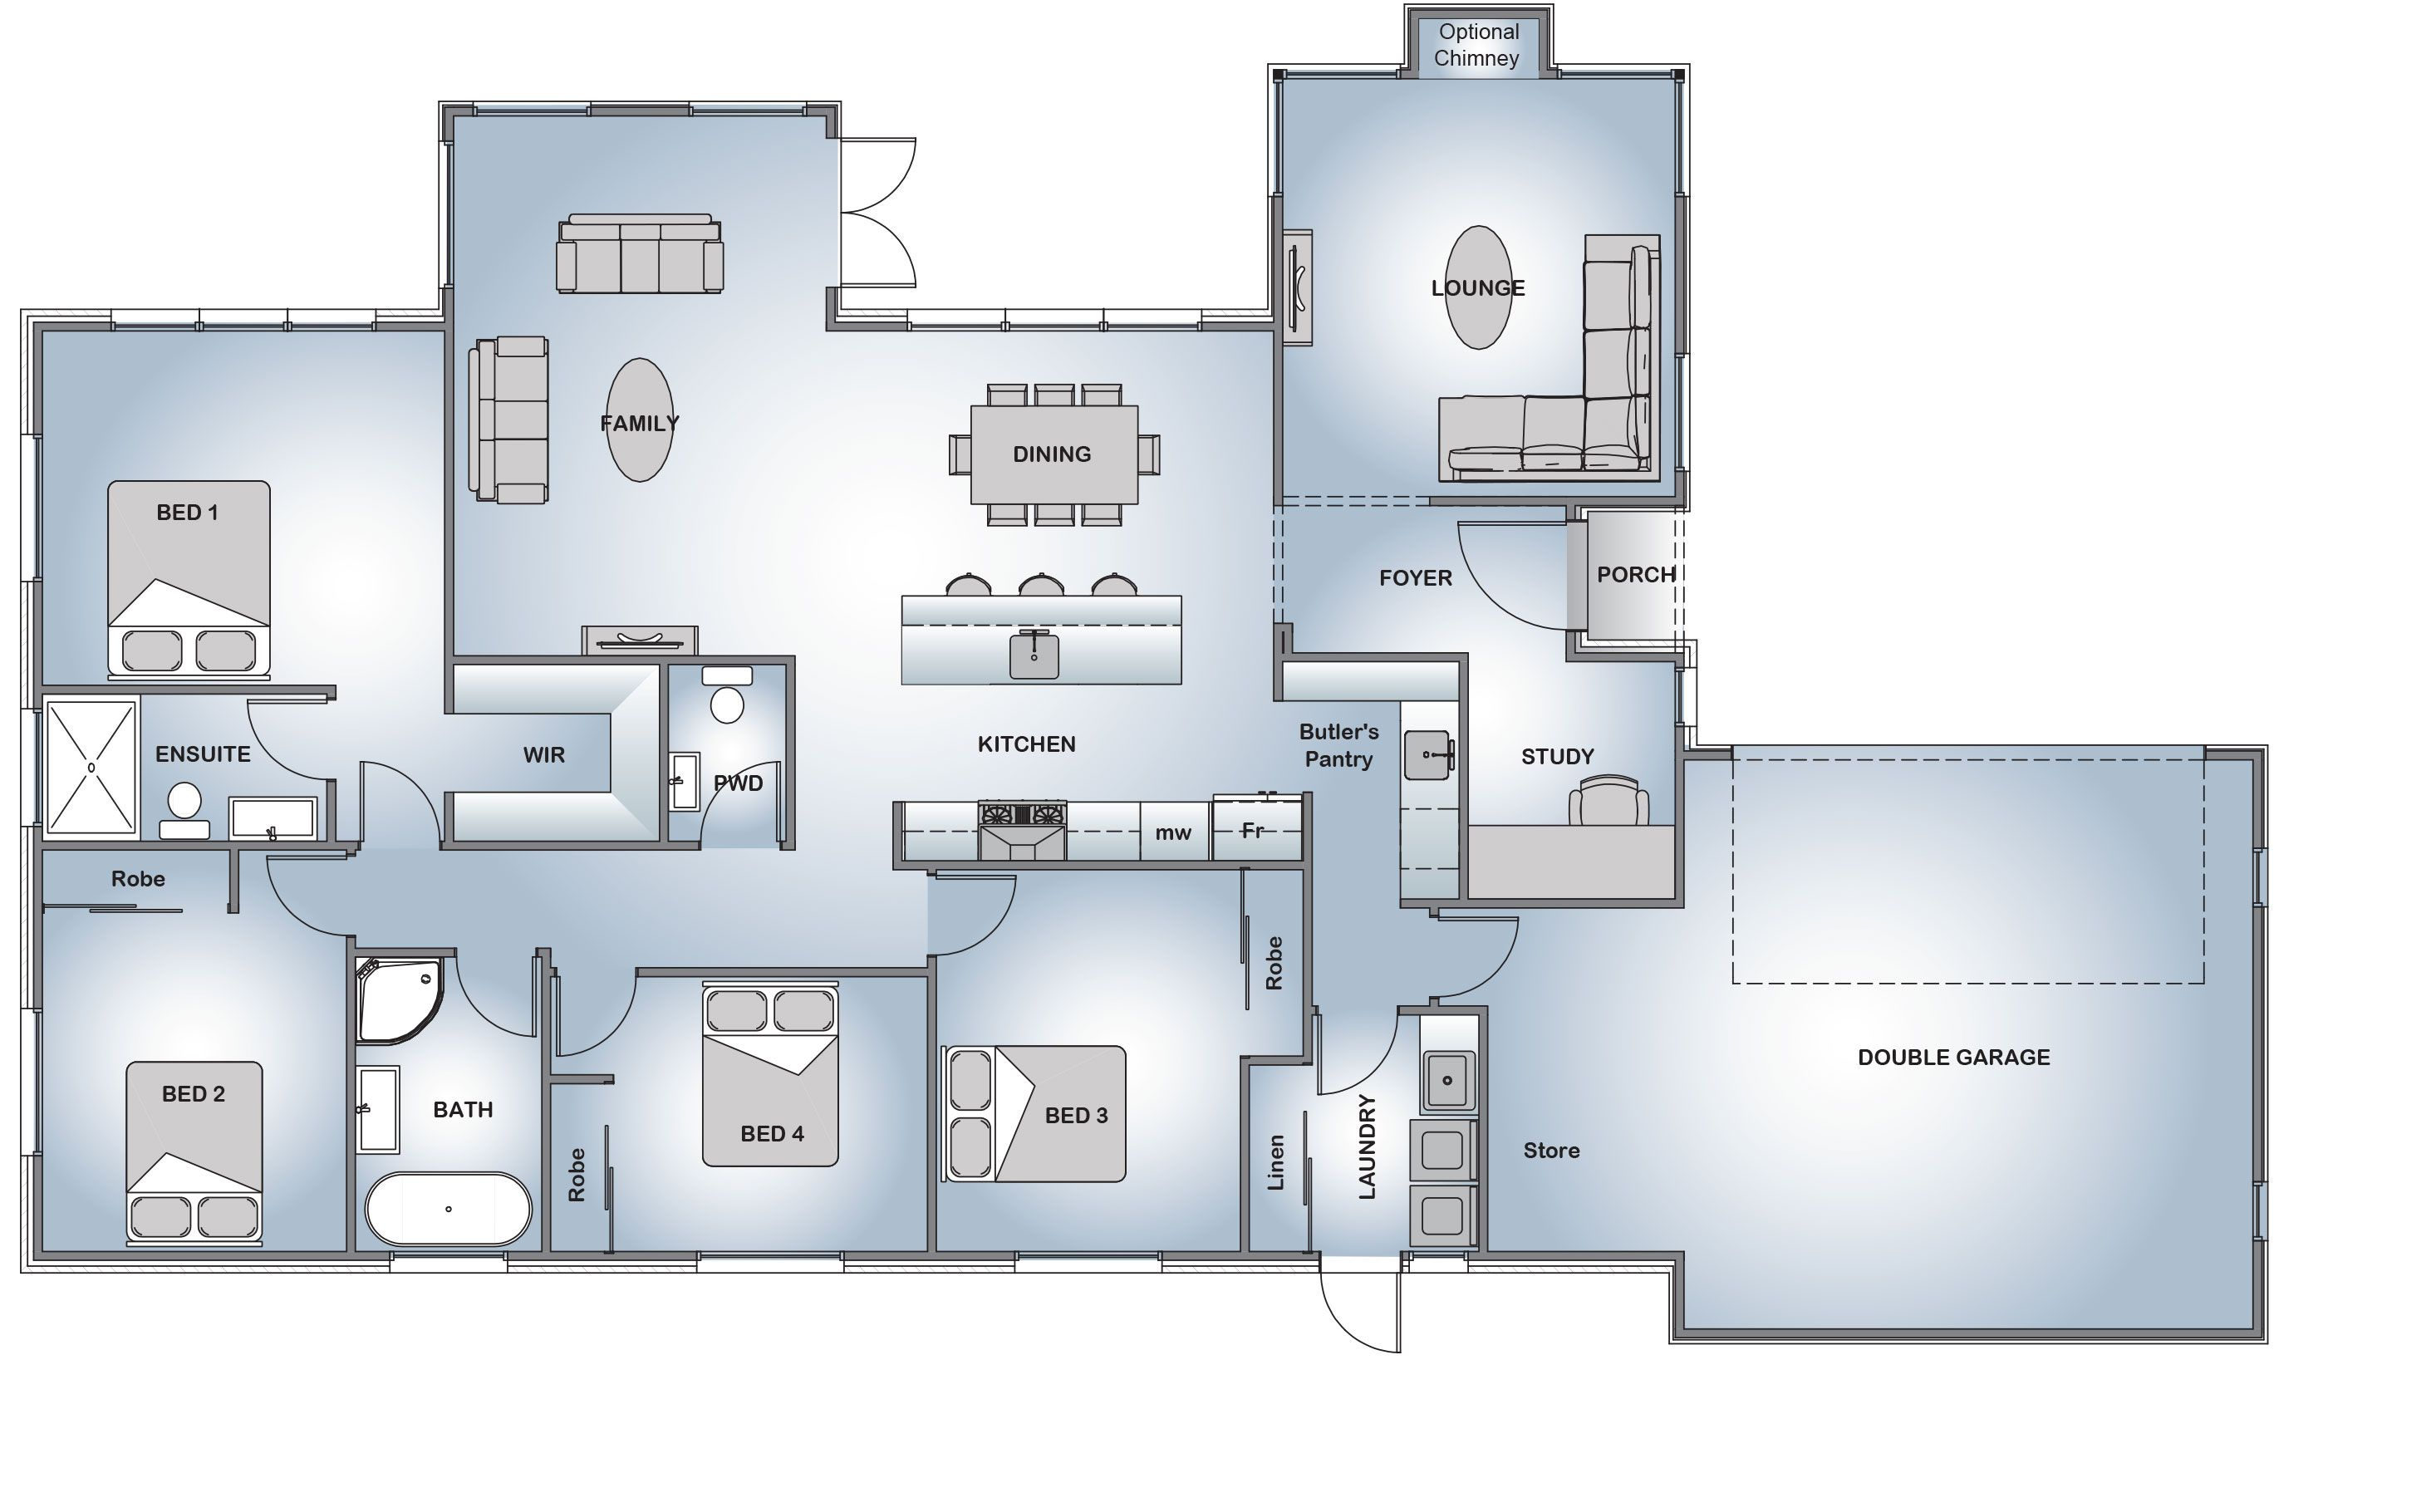 House Plans, House Designs, Floor Plans Wickliffe - Your Style Range ...